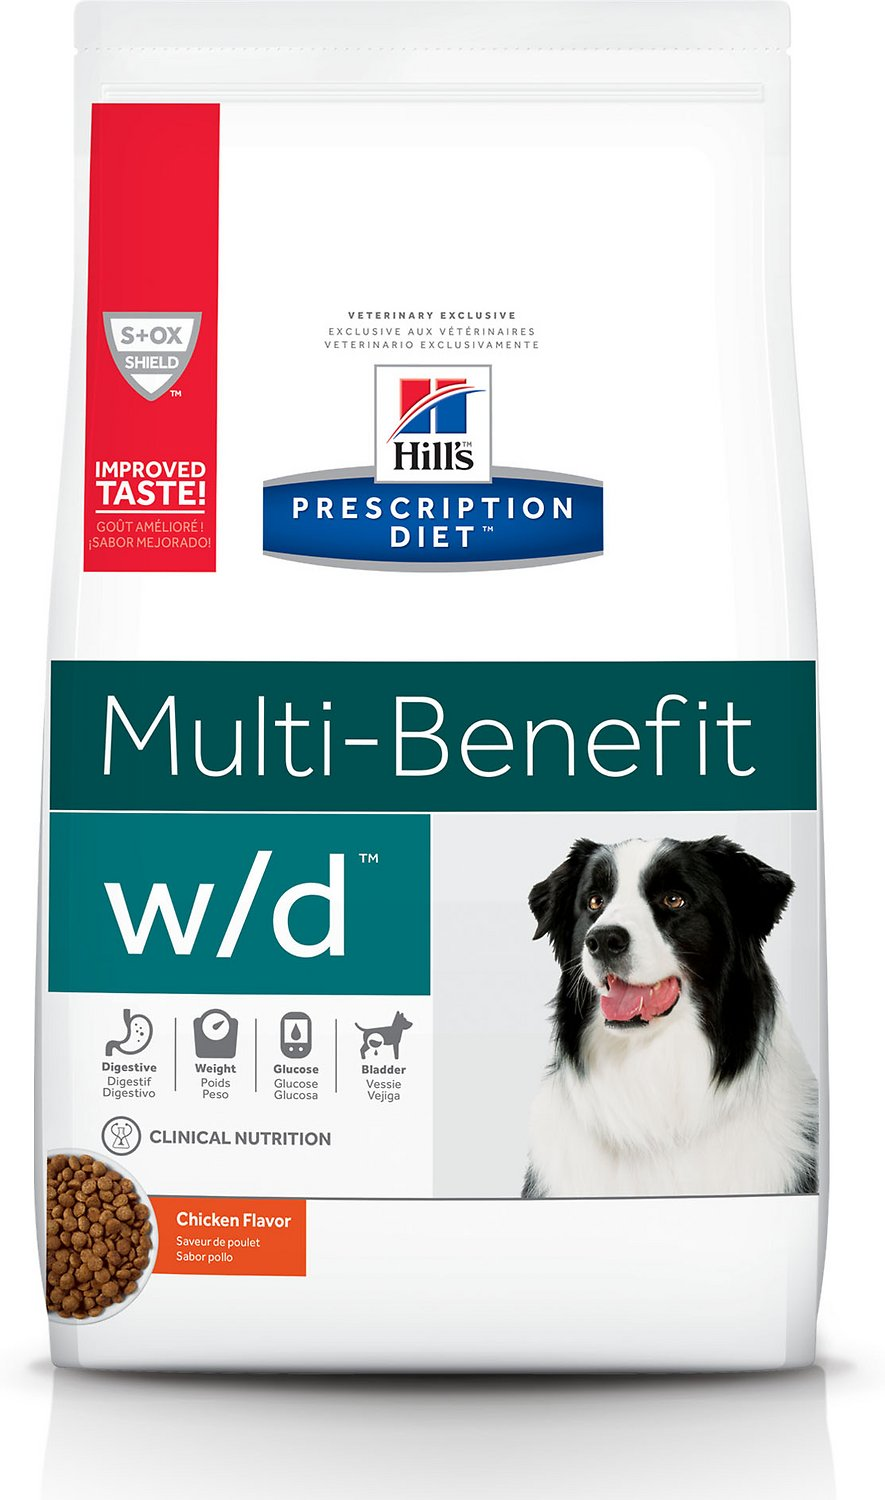 Hill's Prescription Diet w/d Multi-Benefit Digestive, Weight, Glucose, Urinary Management Chicken Flavor Dry Dog Food, 8.5-lb